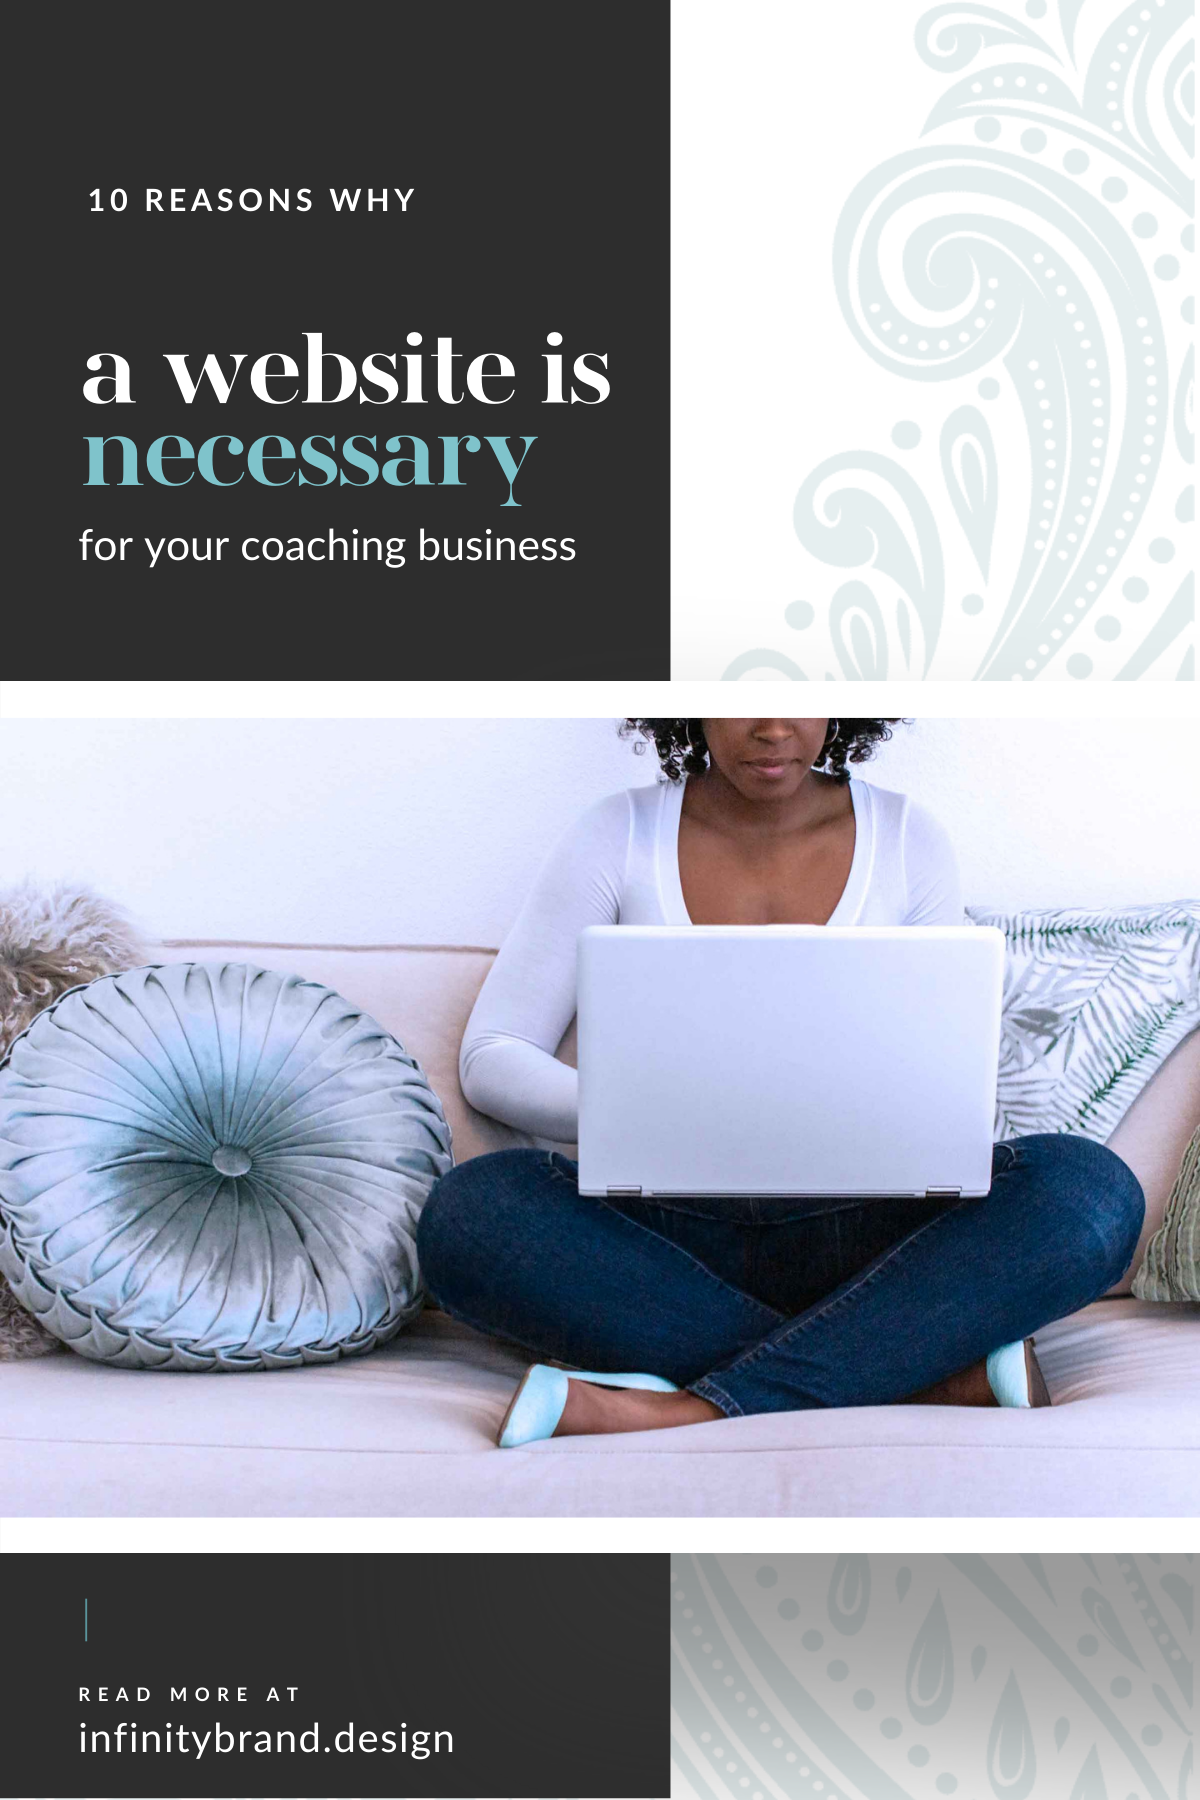 Your website is the most valuable marketing asset your coaching business can have and is the key to more clients, more time, and more money.